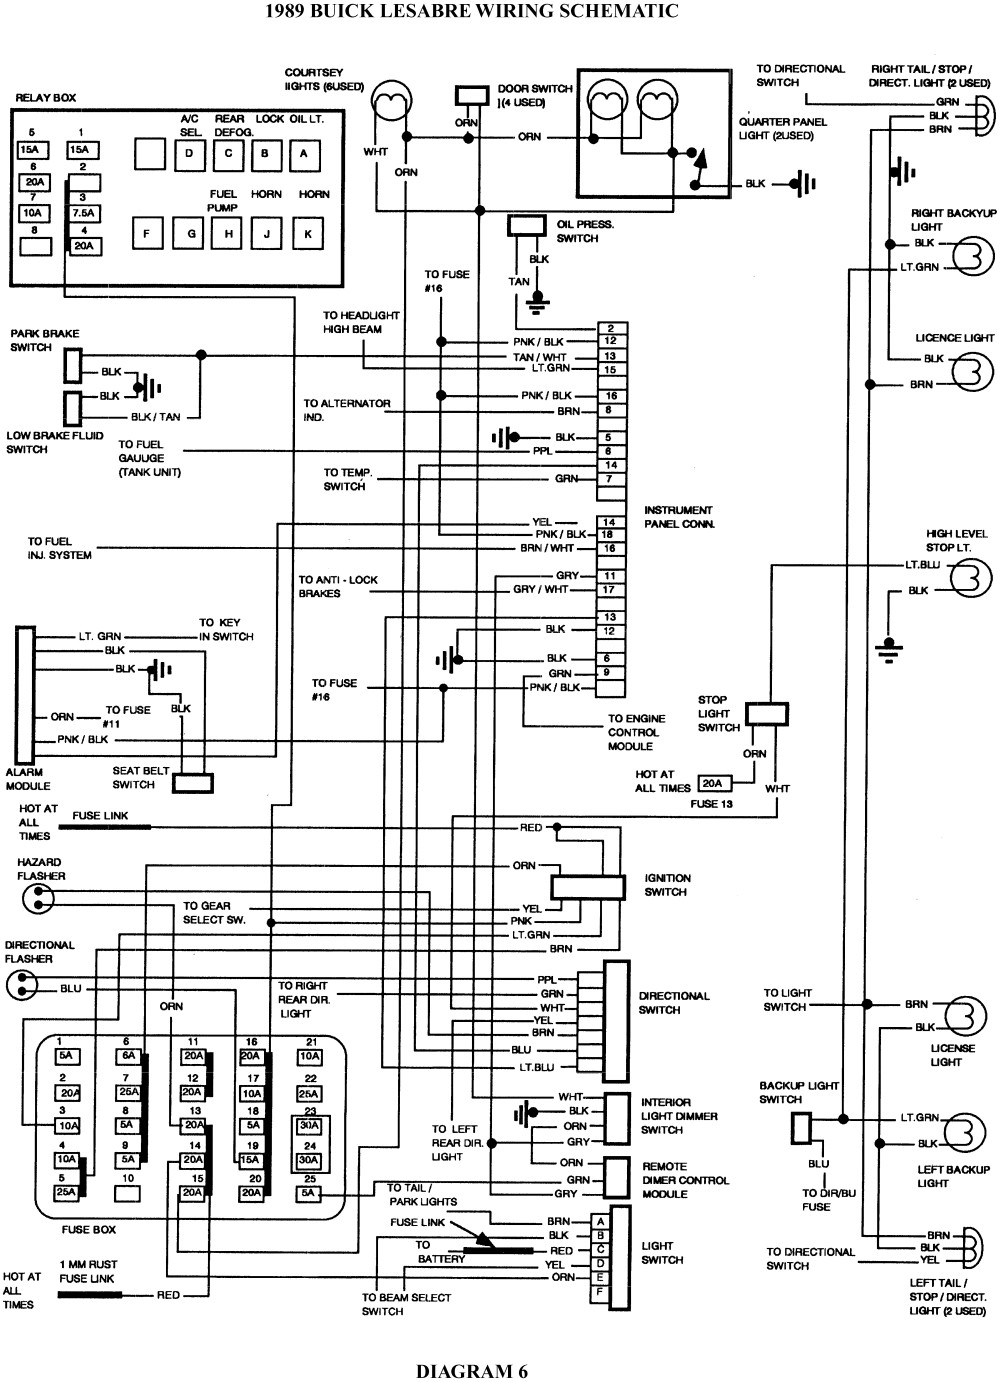 96 buick regal wiring diagram private sharing about wiring diagram u2022 rh caraccessoriesandsoftware co uk  buick century 96 radio wiring diagram